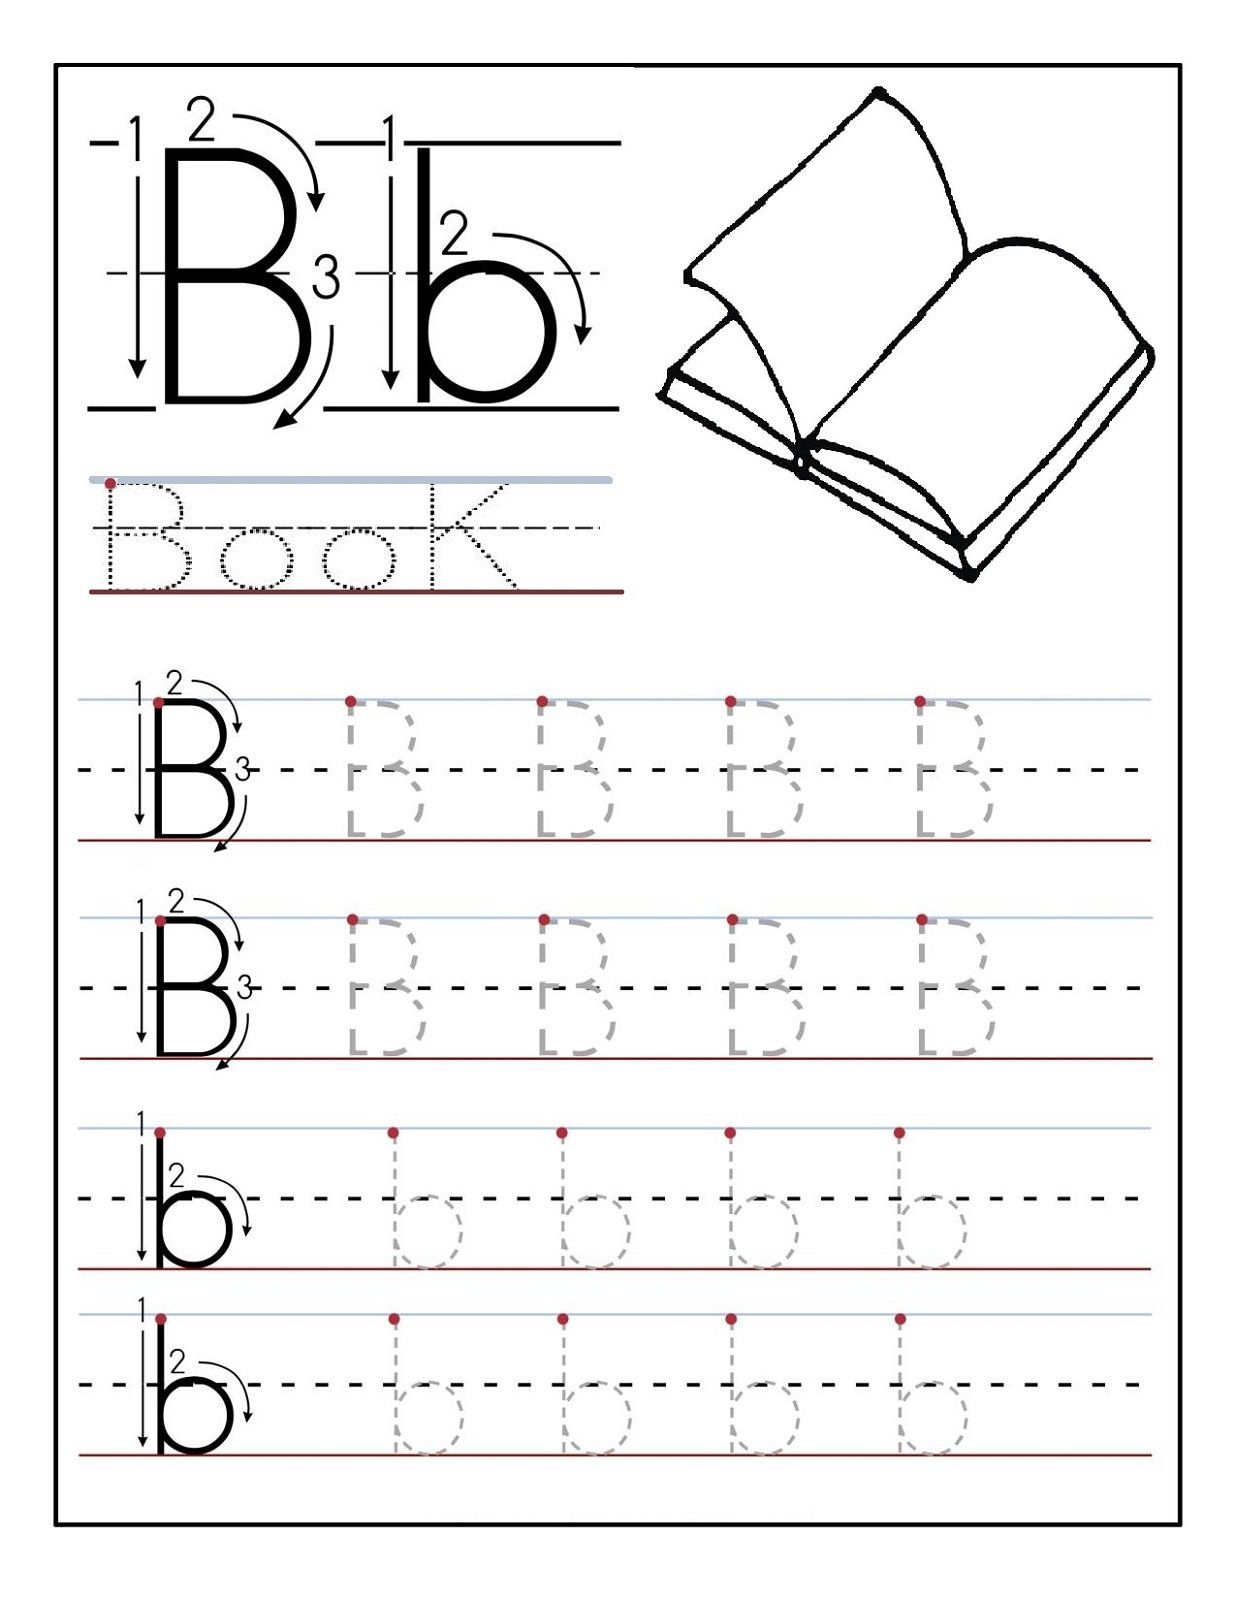 Traceable Letters Worksheet For Children Golden Age Activities - Free Printable Letter Tracing Sheets